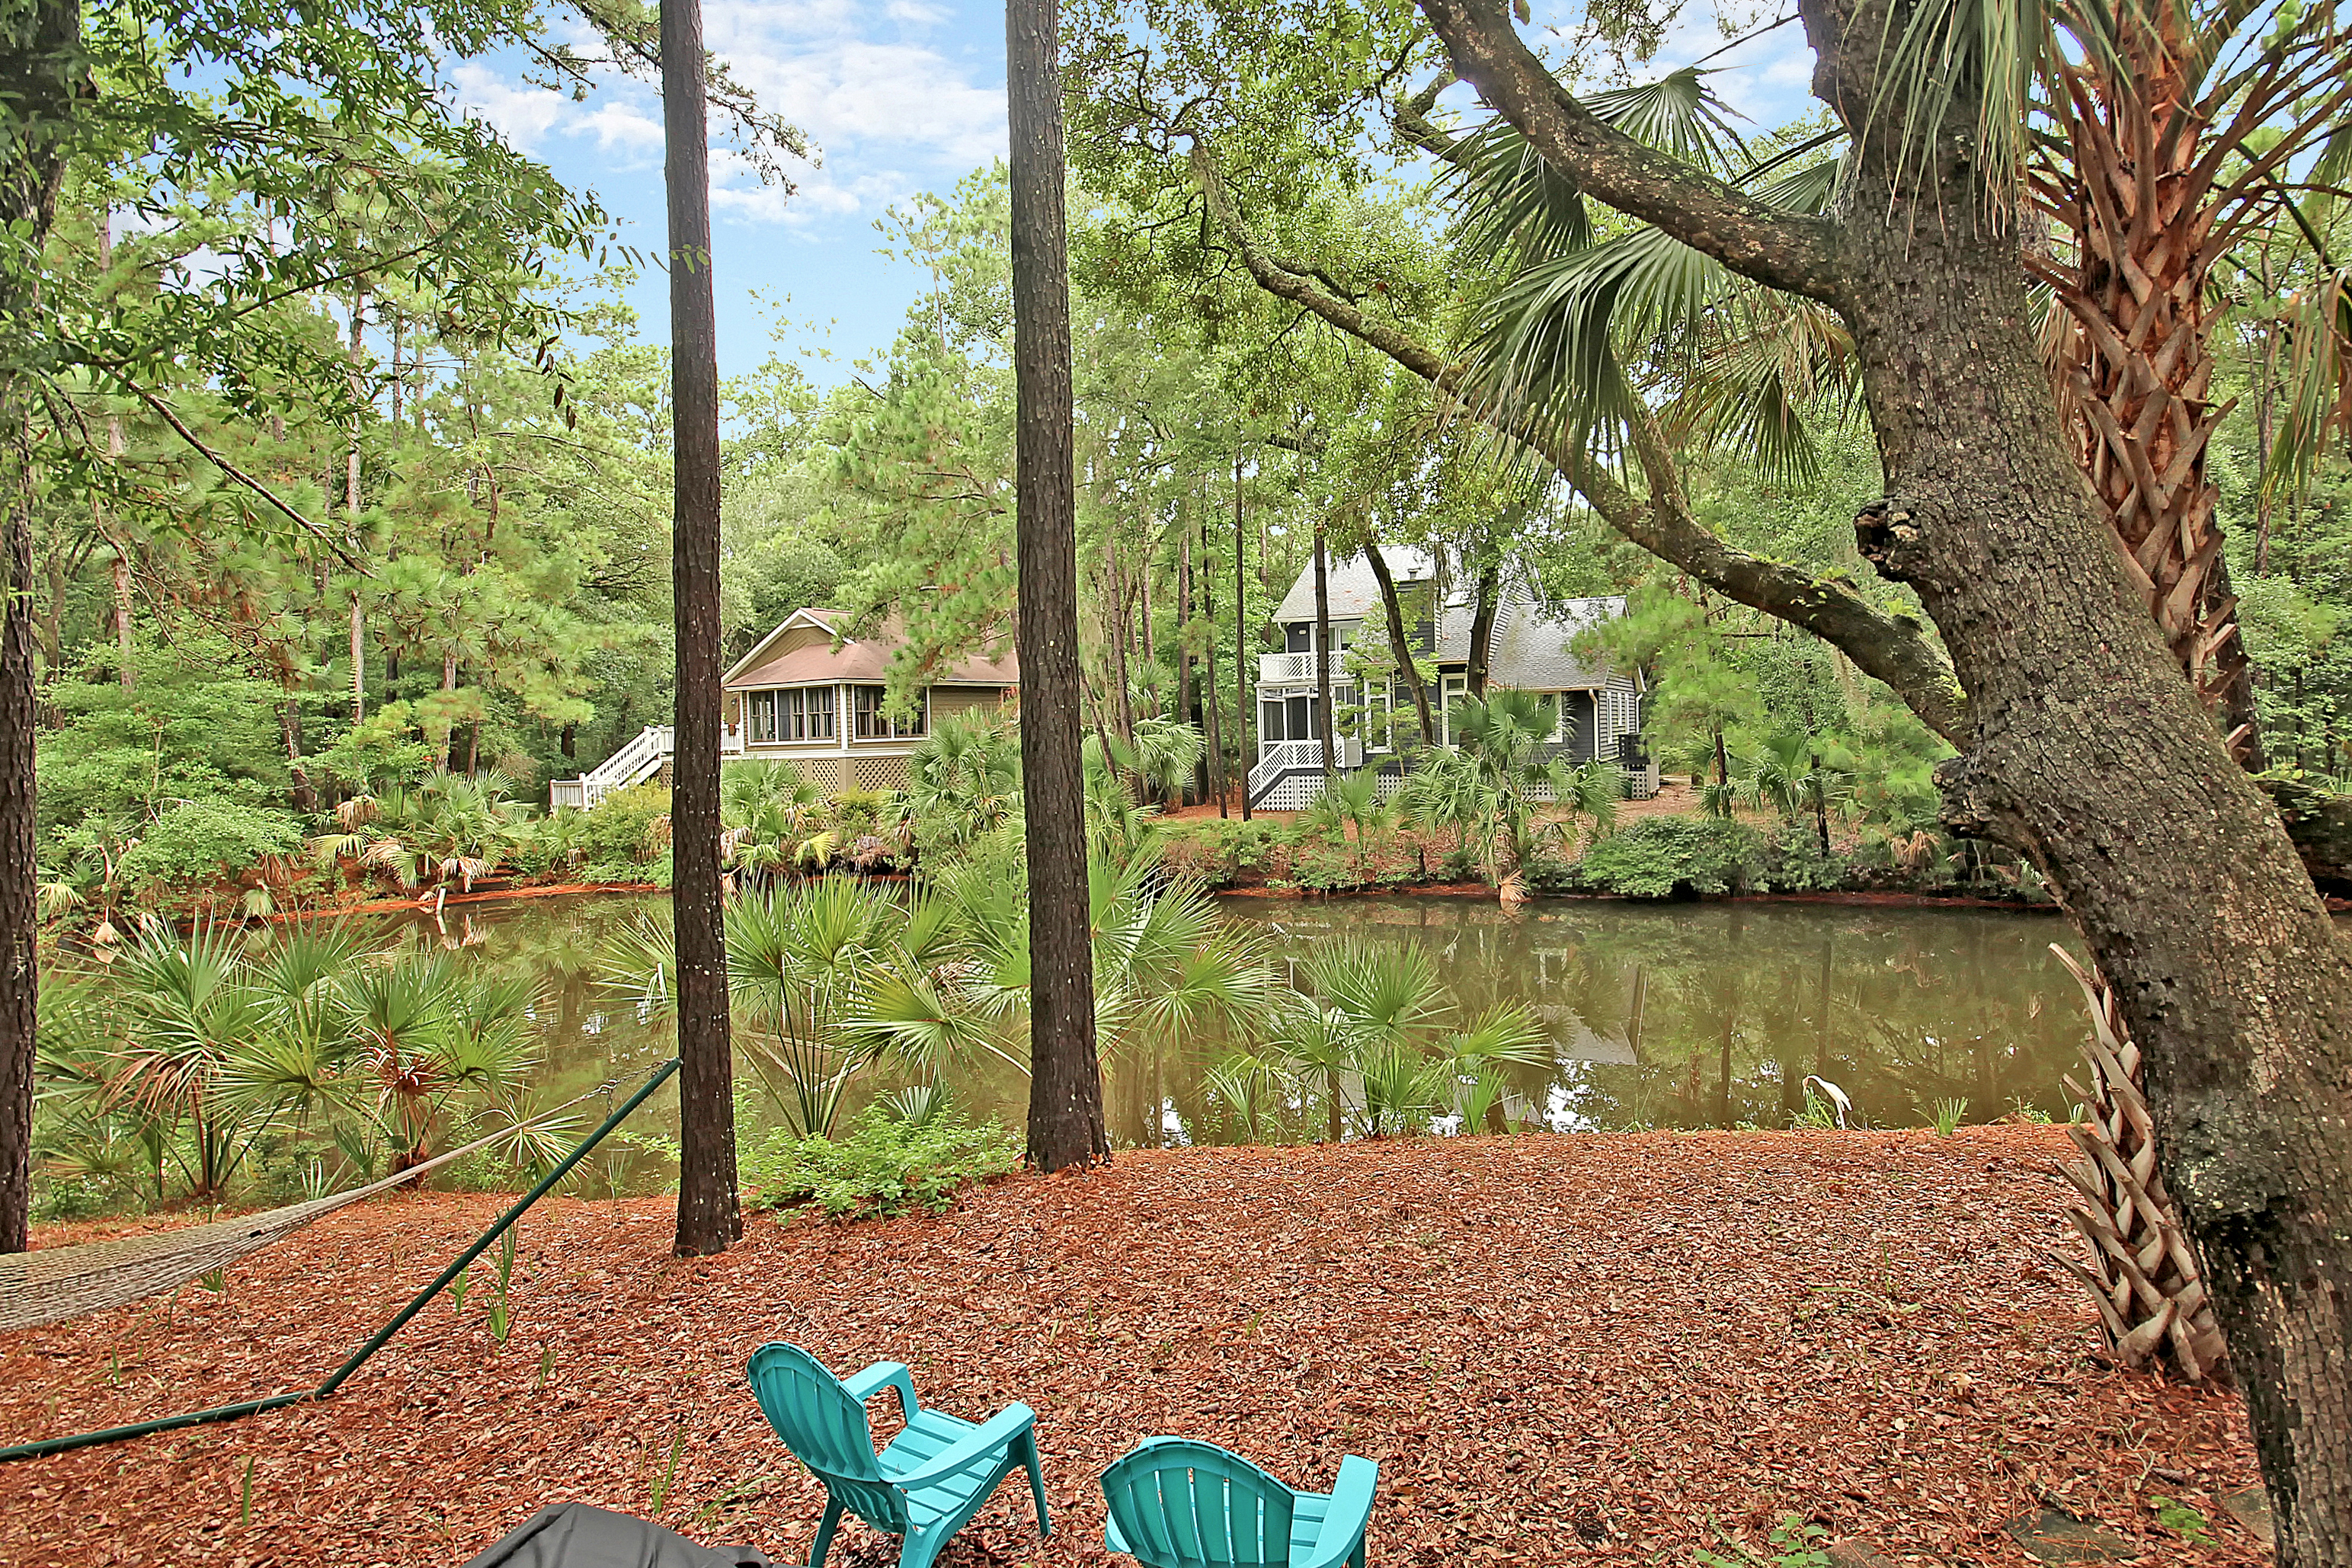 Johns Island SC Vacation Rental Welcome to Johns